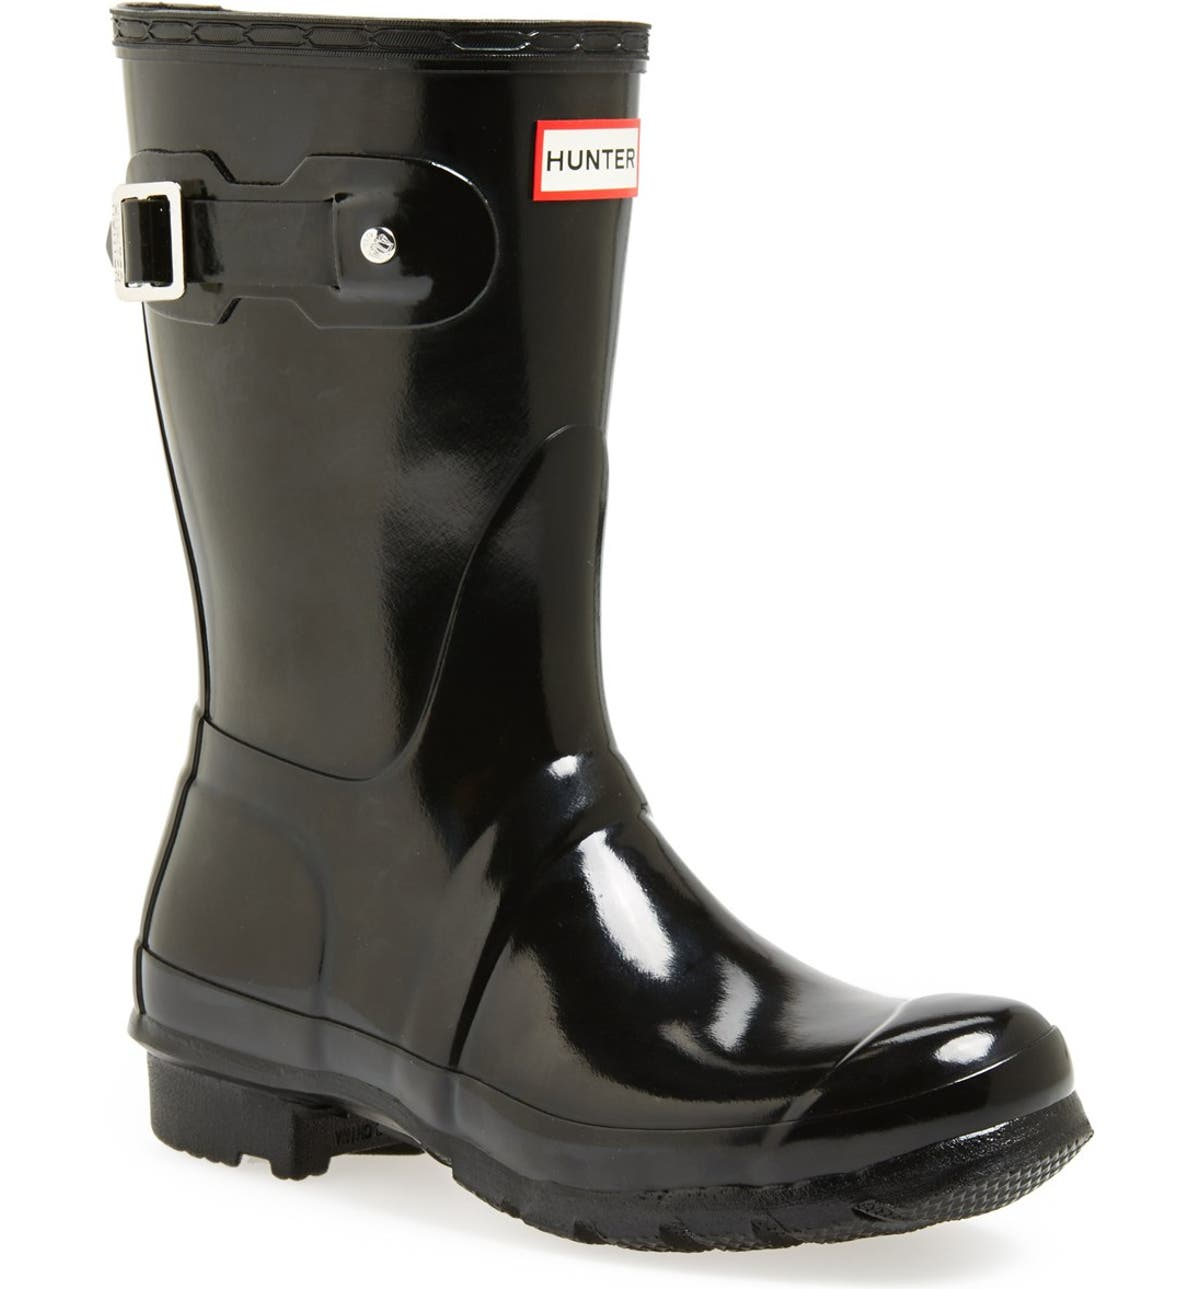 Gloss Hunter En W23700 Bottes C Original 7gvfY6yIb